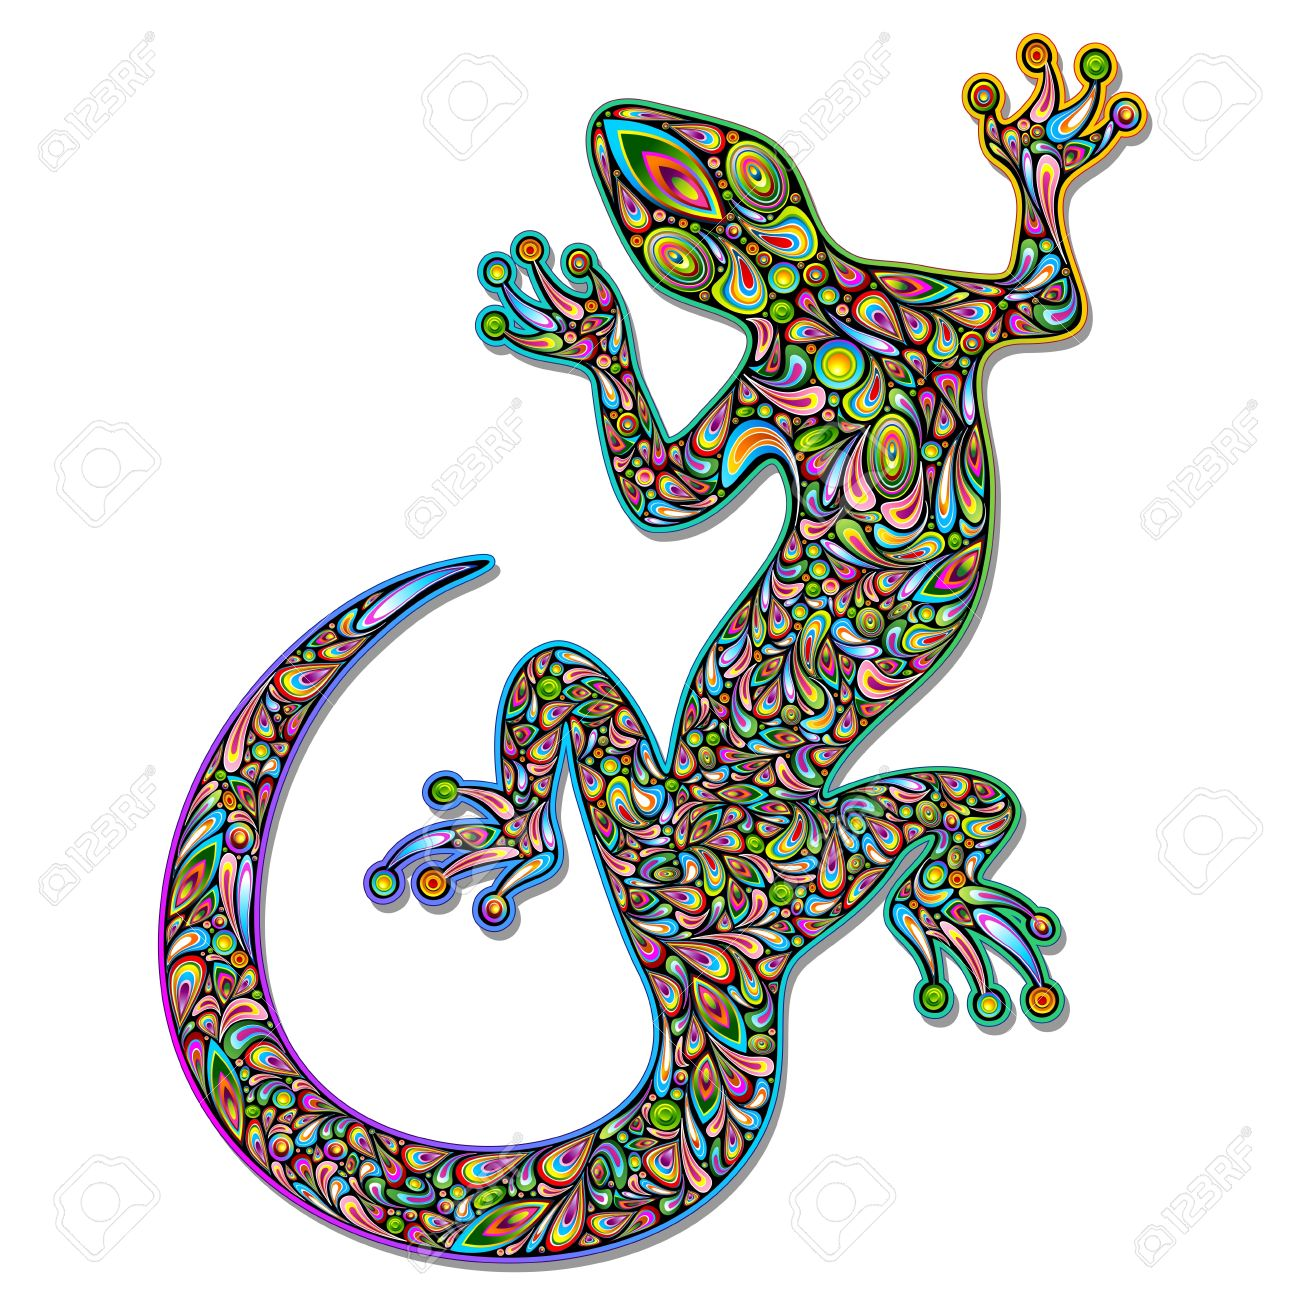 Gecko Geko Lizard Psychedelic Art Design Stock Vector - 17032549